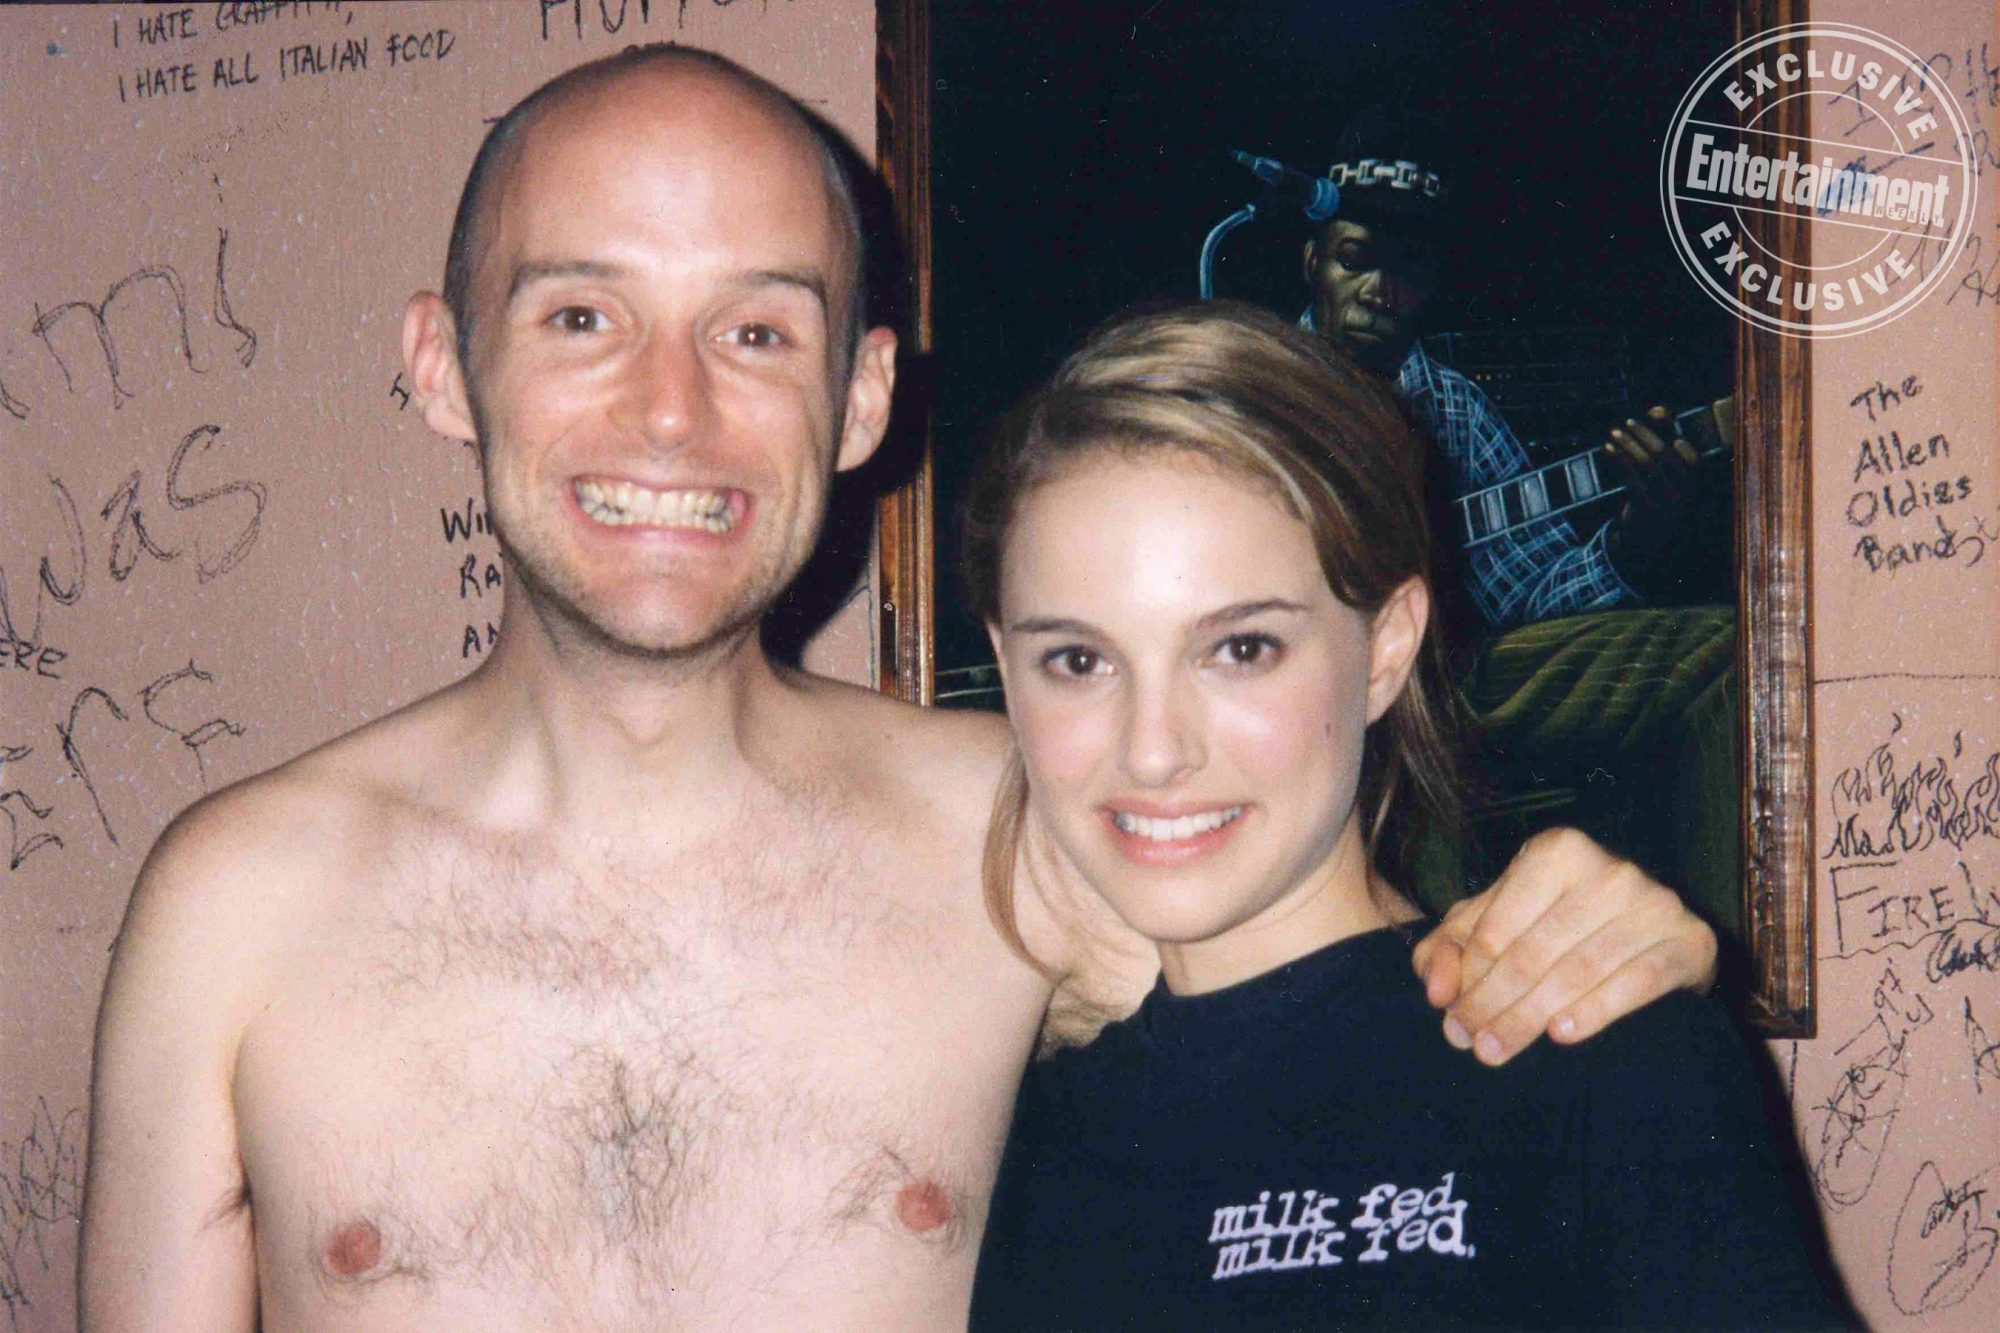 Moby and Natalie Portman. THEN IT FELL APART credit: Moby